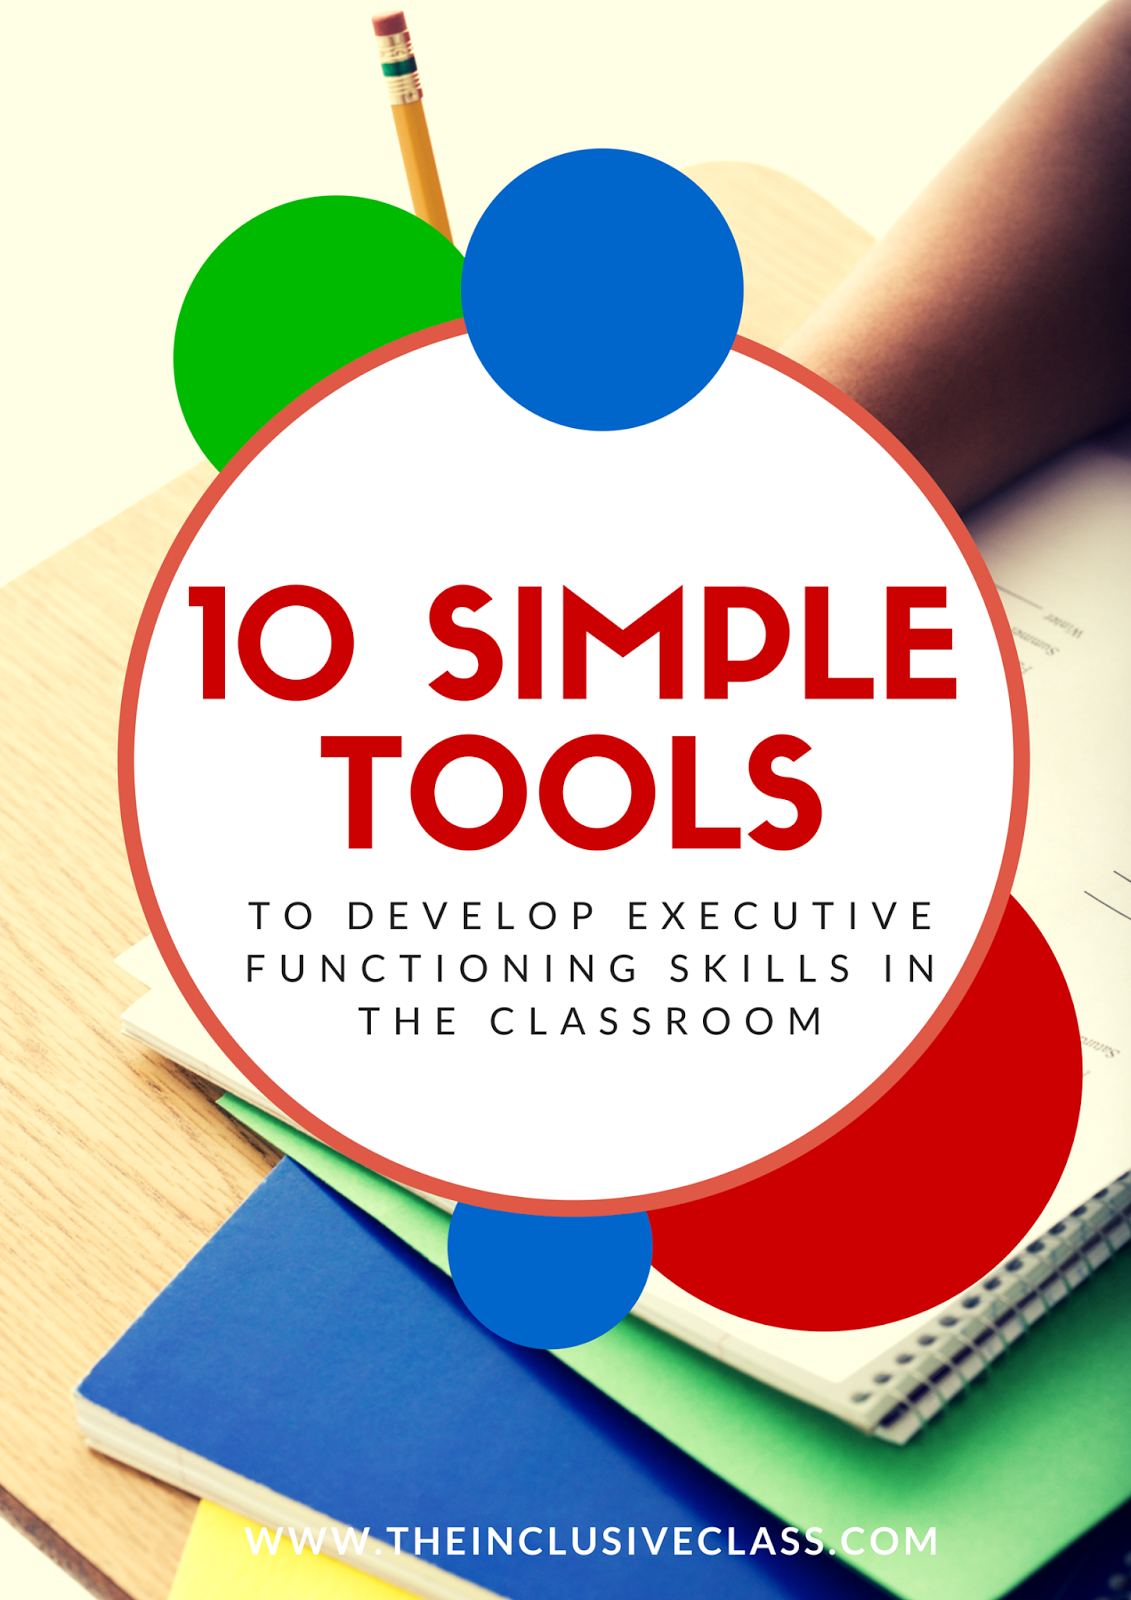 10 Simple Tools To Develop Executive Functioning Skills In